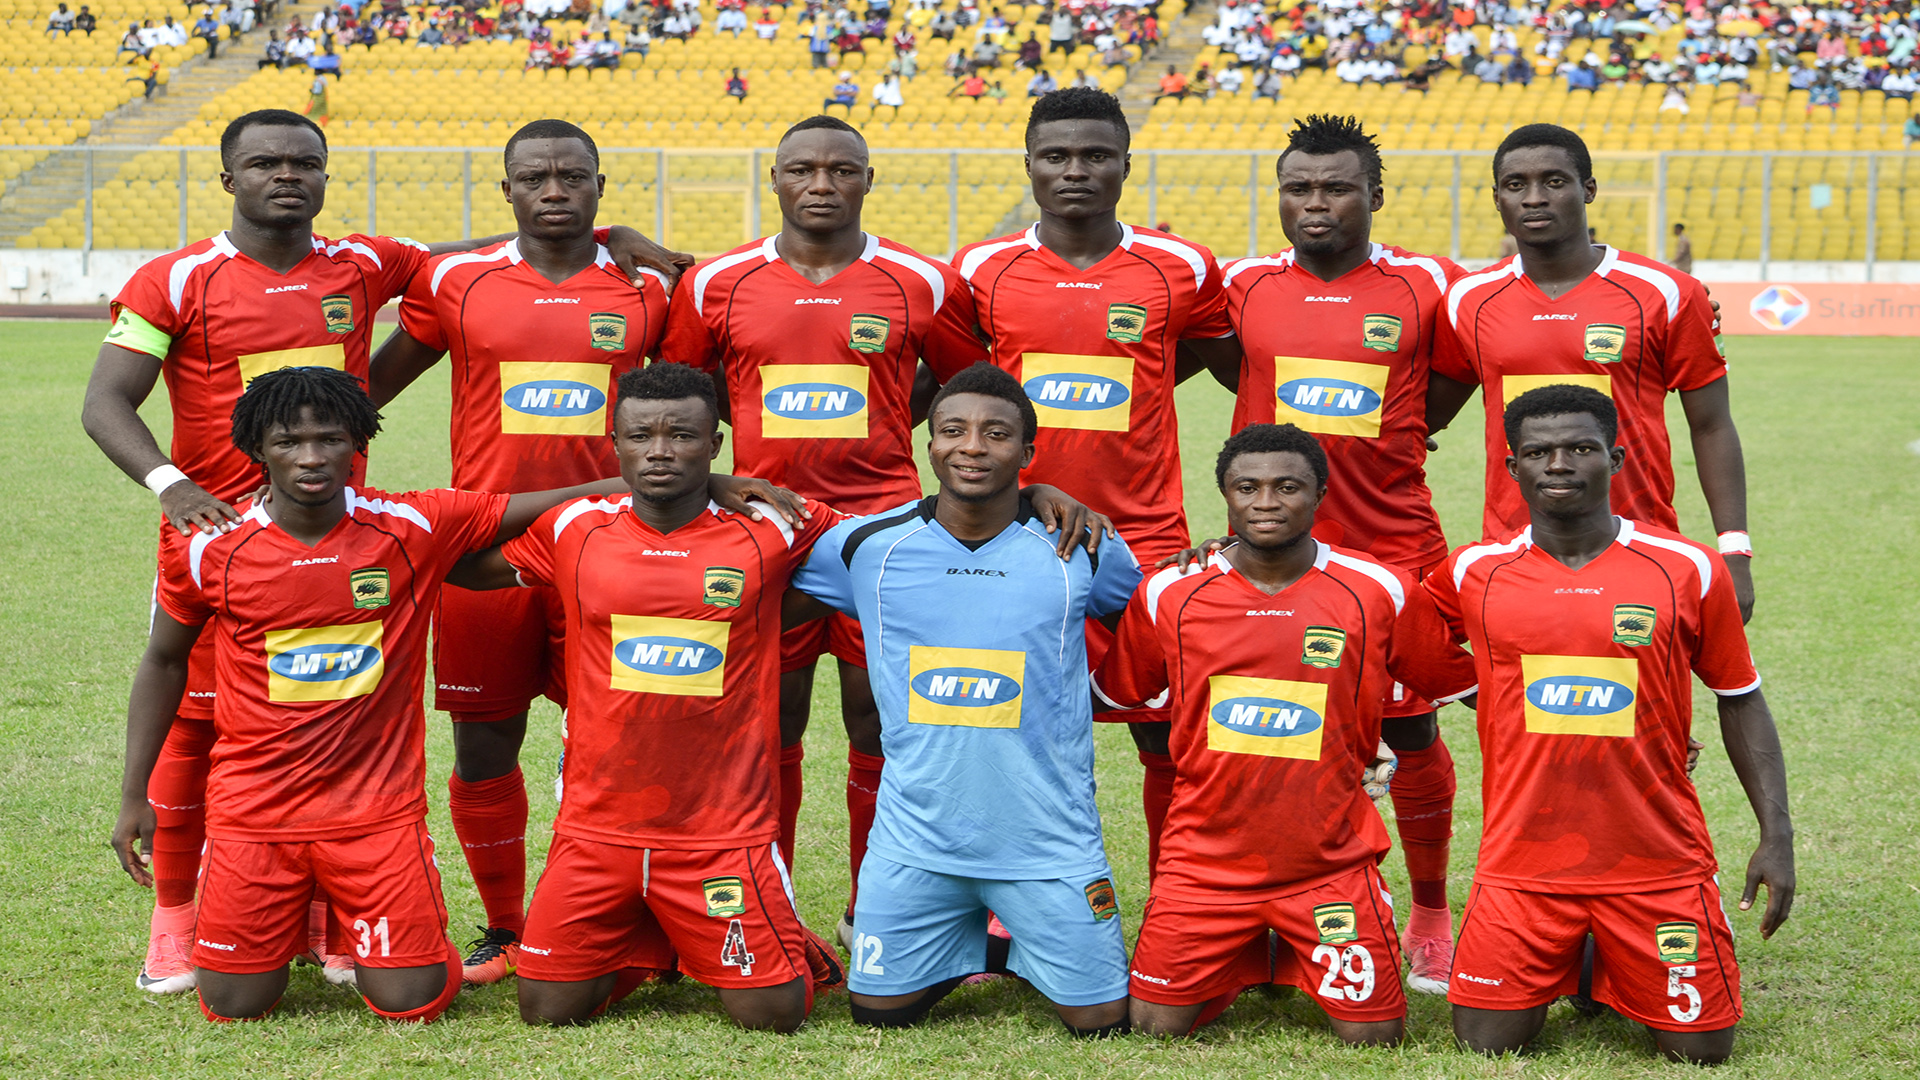 Have Asante Kotoko prepared adequately for the Caf Confederation Cup?